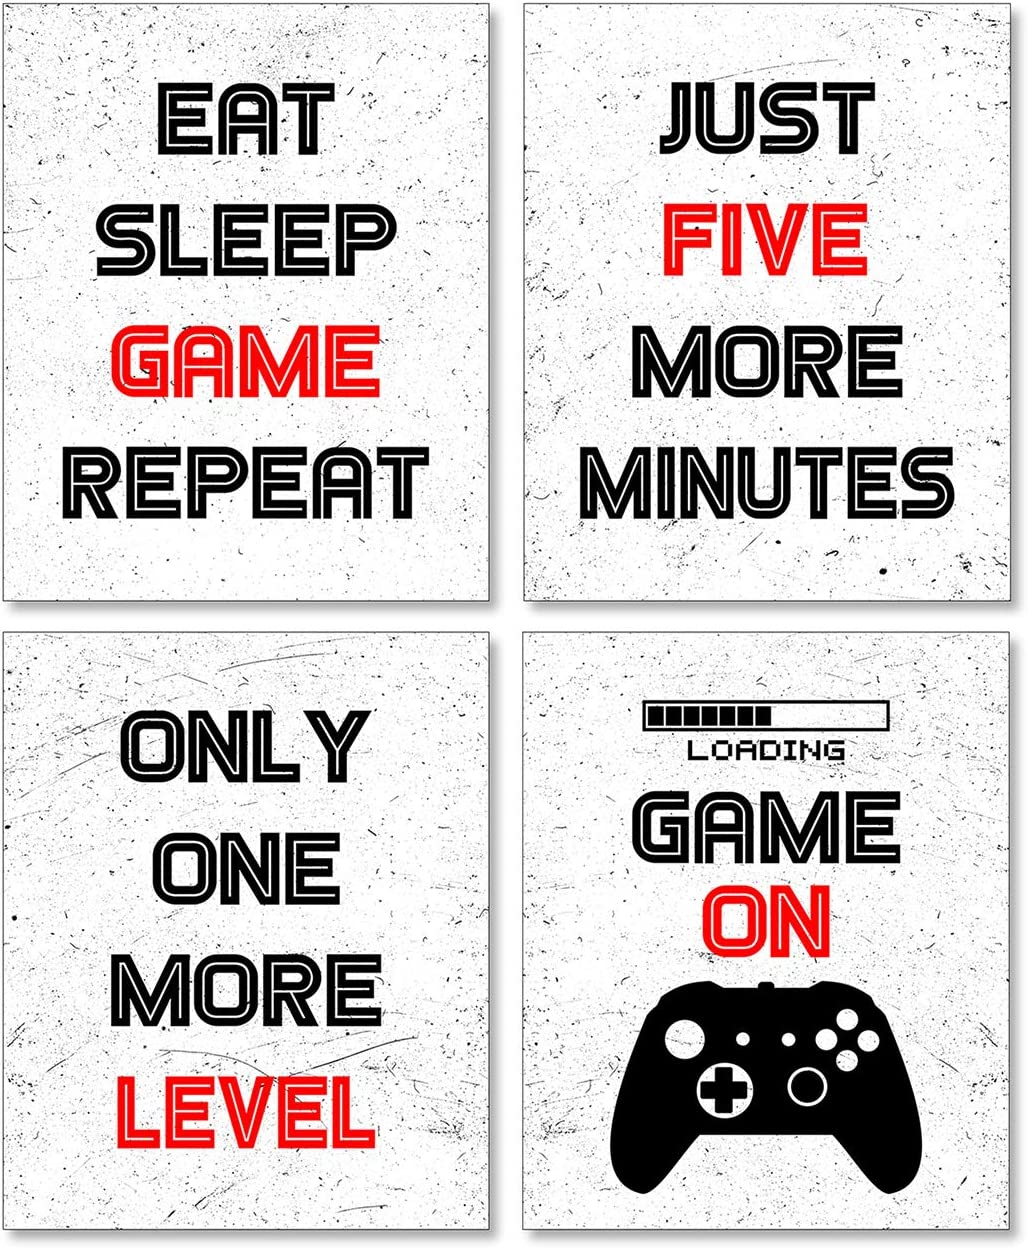 Game Room Decor, Boys Room Decorations for Bedroom, Gaming Wall Art for Kids Boy Playroom Home Decor, Boy Room Decor, Gaming Posters (Set of 4, 8X10in, Unframed)